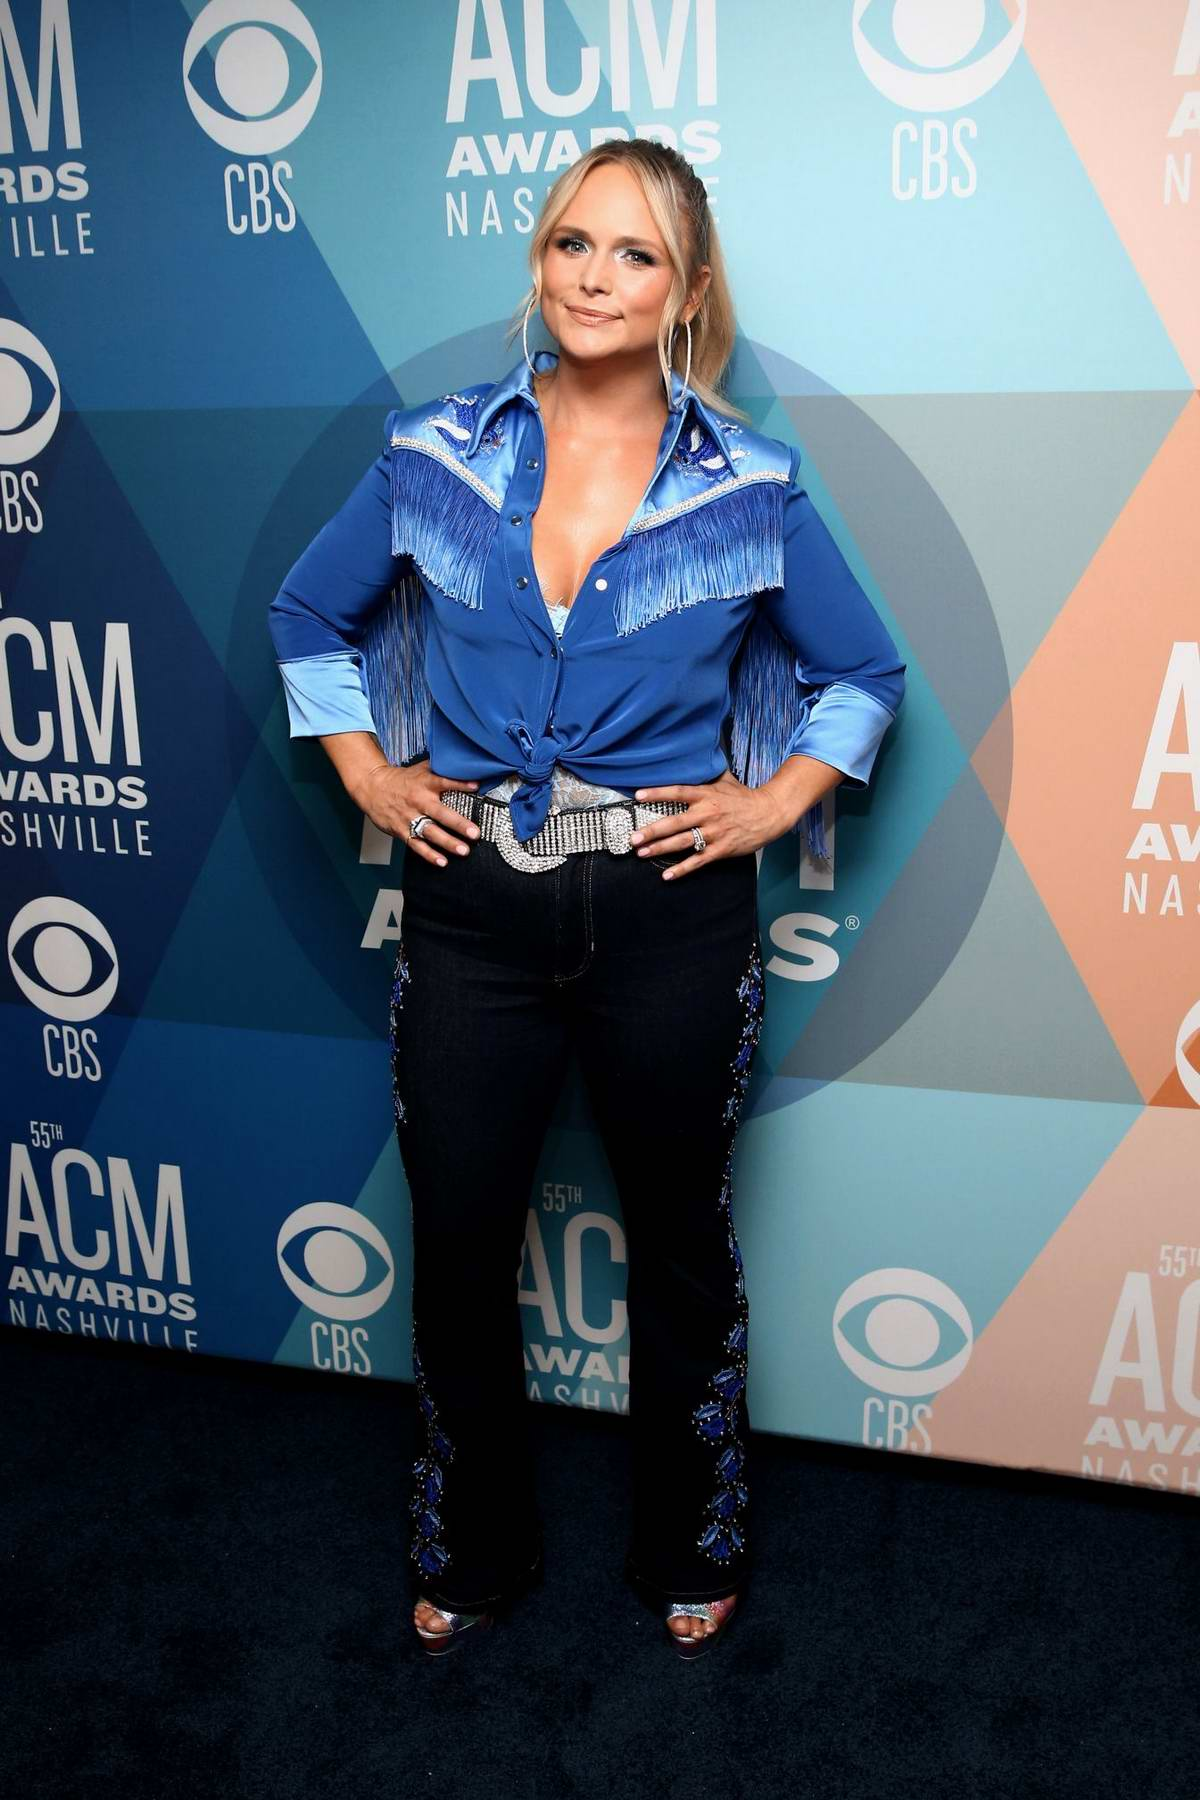 Miranda Lambert attends the 55th Academy of Country Music Awards at the Bluebird Cafe in Nashville, Tennessee